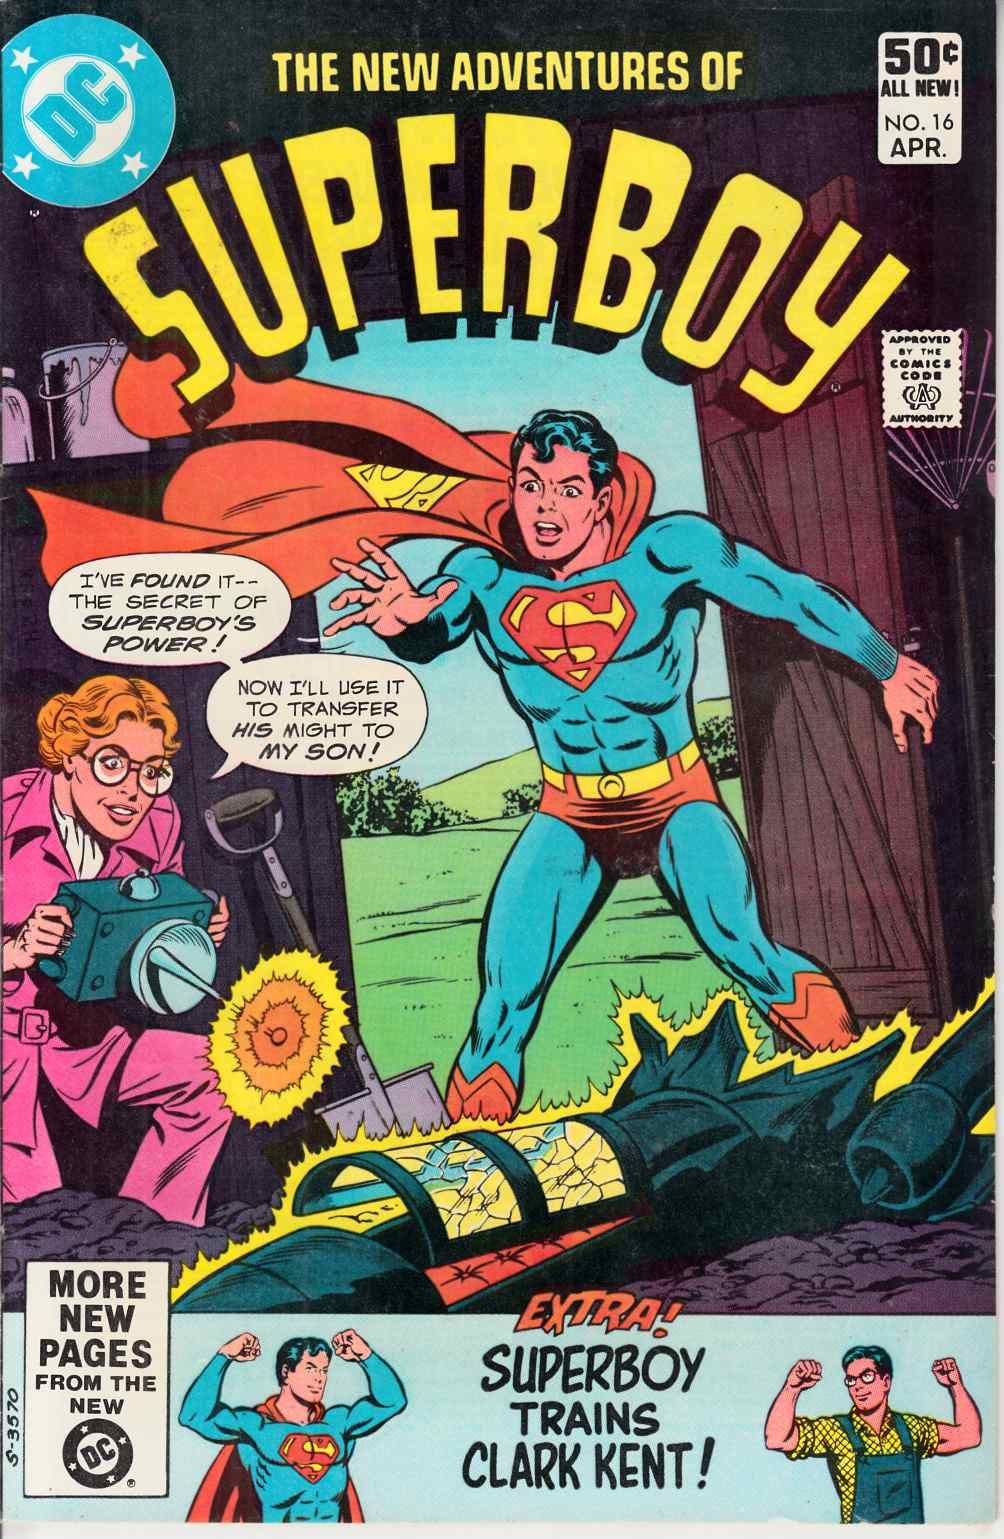 New Adventures of Superboy #16 Very Fine Plus (8.5) [DC Comic] THUMBNAIL